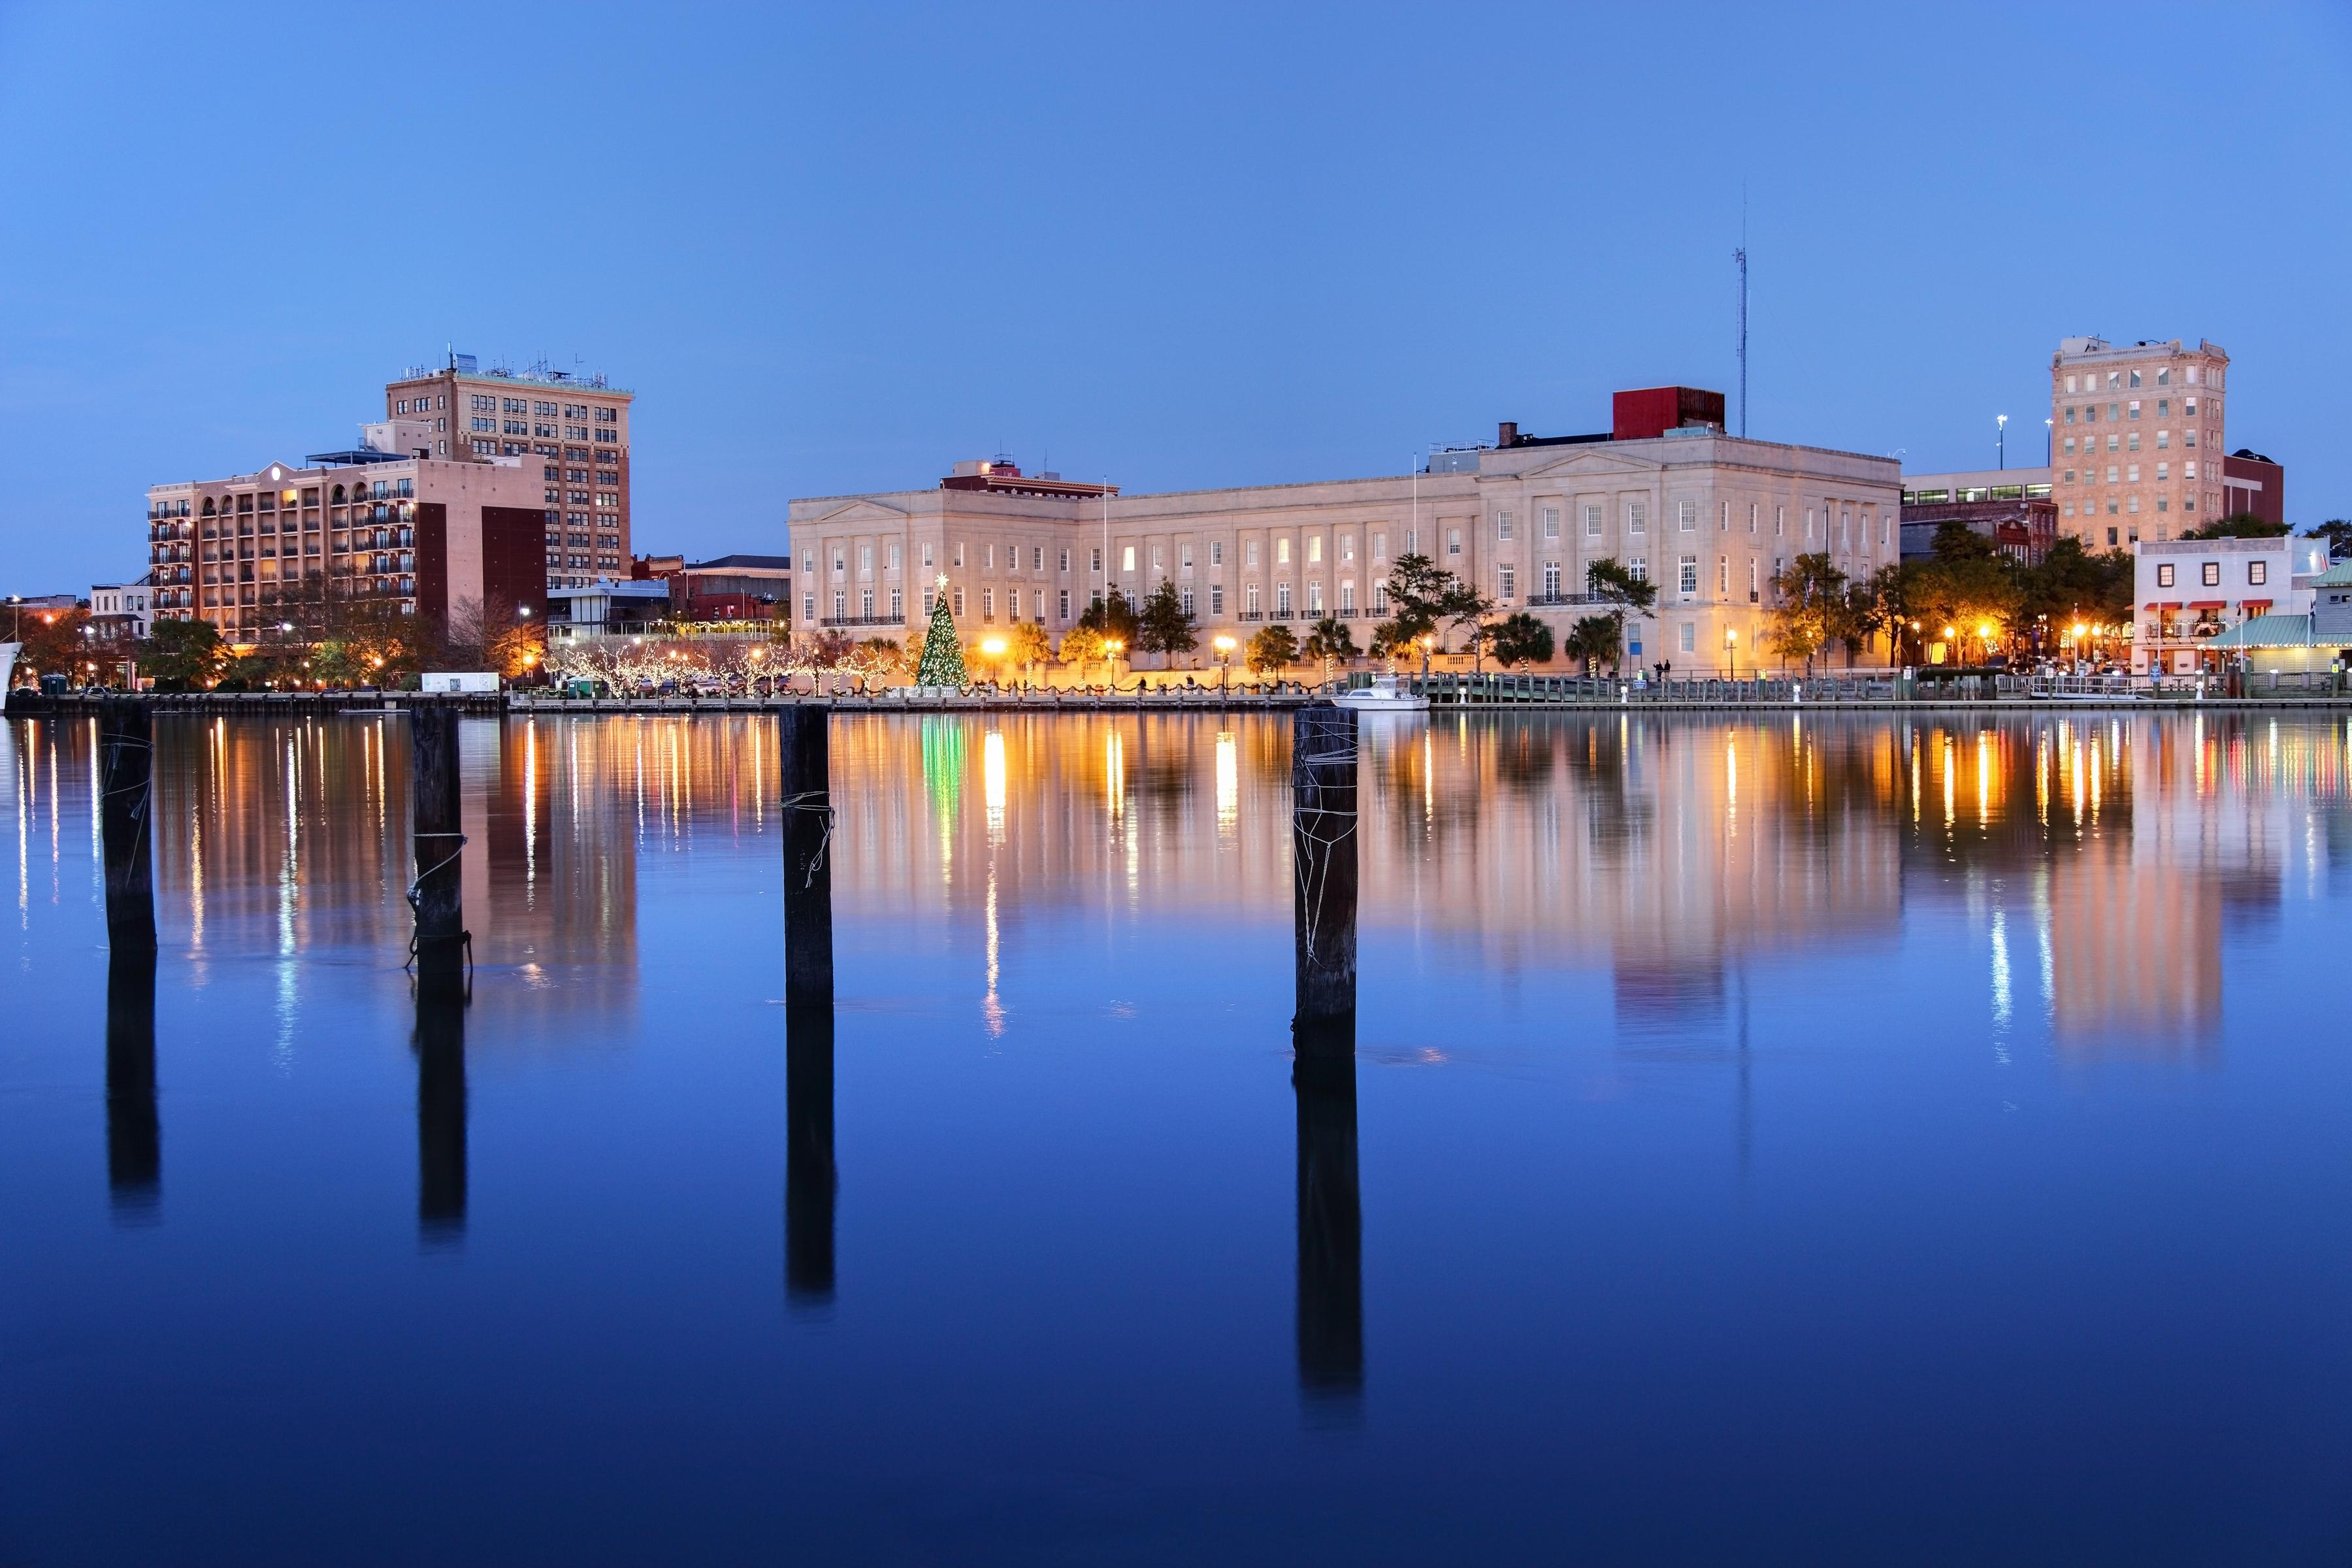 Take in the twinkling lights of Downtown Wilmington.